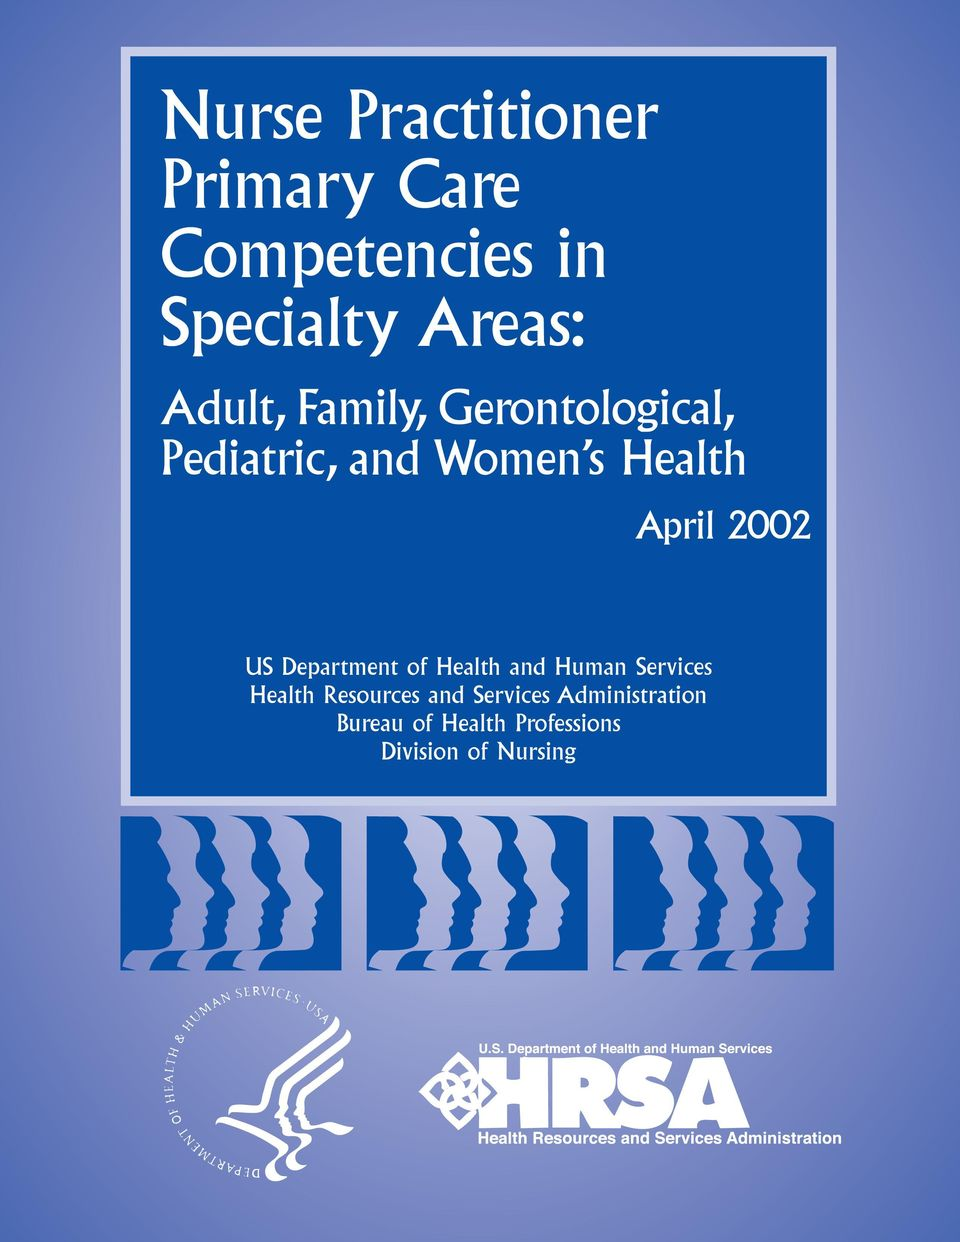 2002 US Department of Health and Human Services Health Resources and